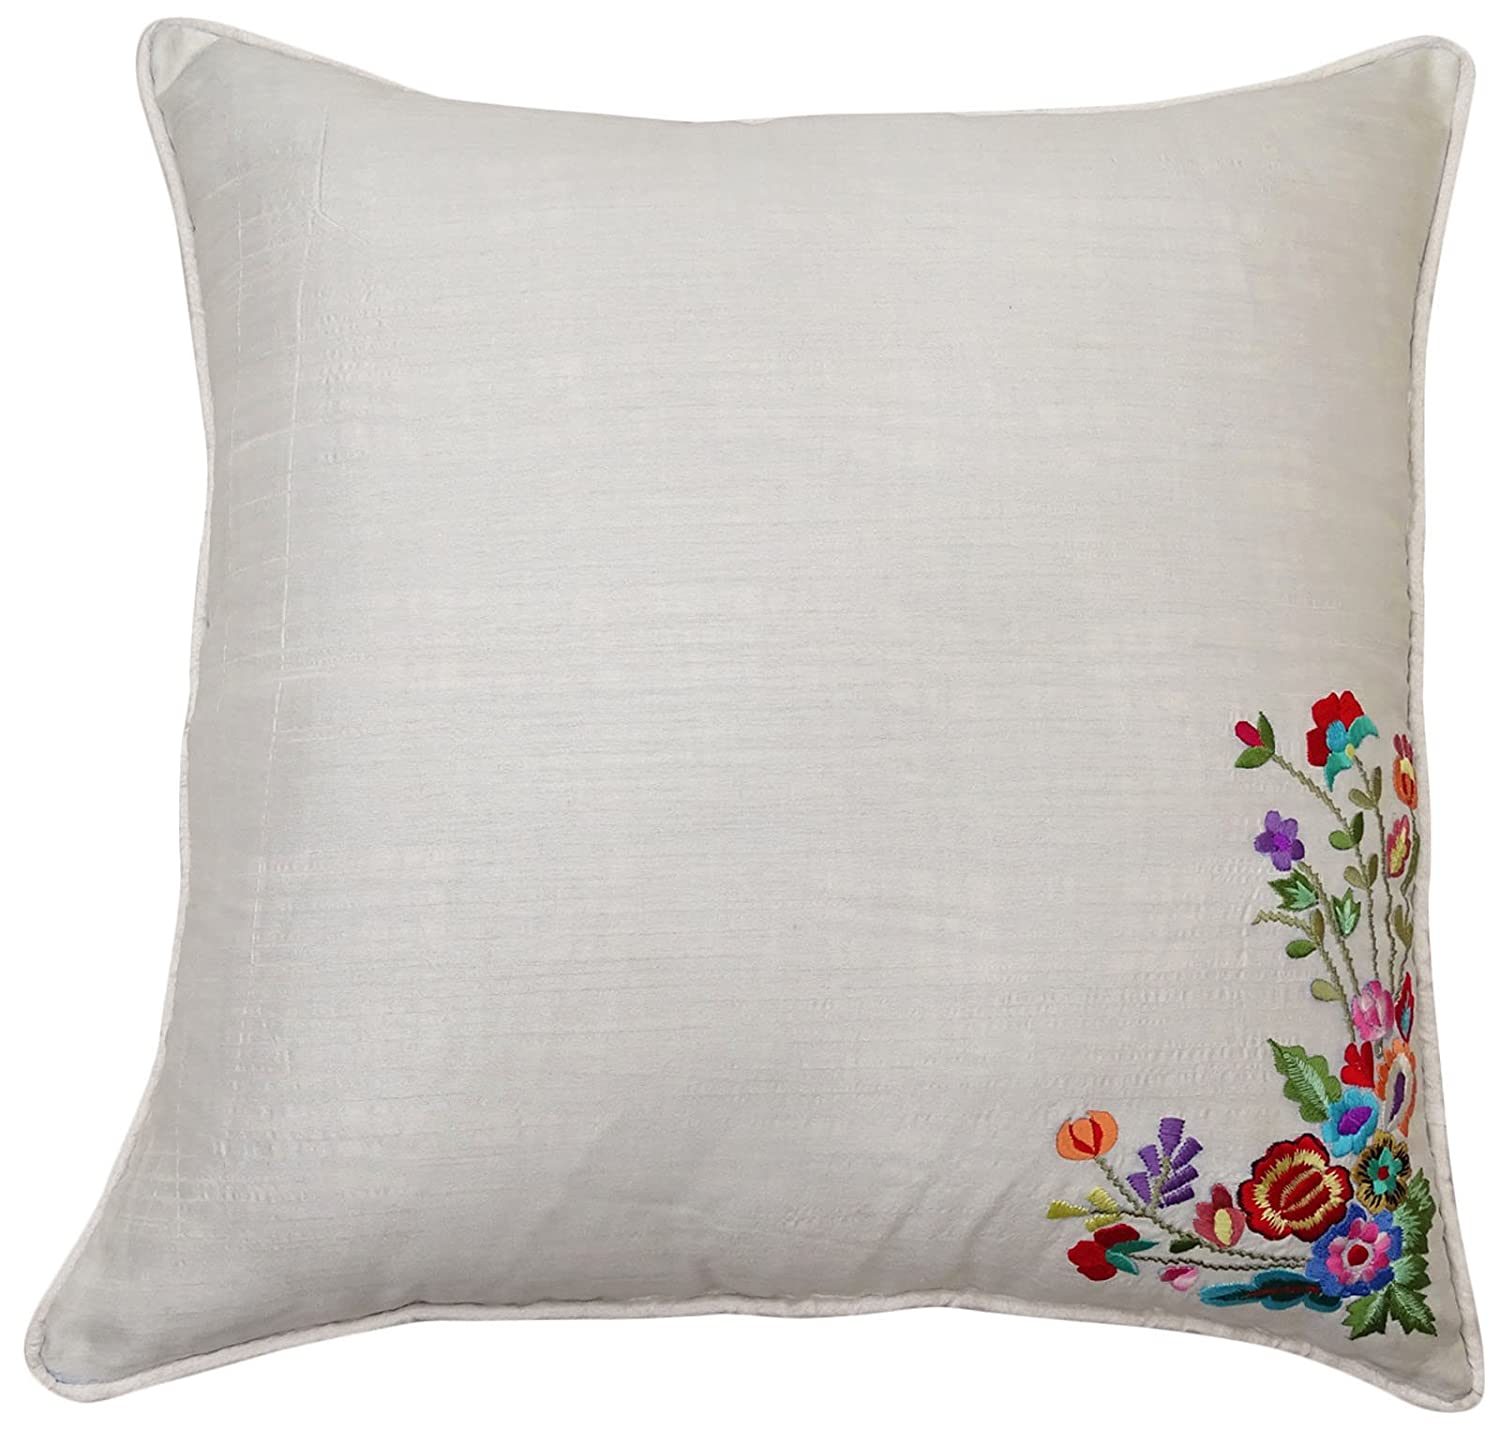 Poly Dupion Square Cushion Cover Throw Floral Embroidered Gray Pillow Case